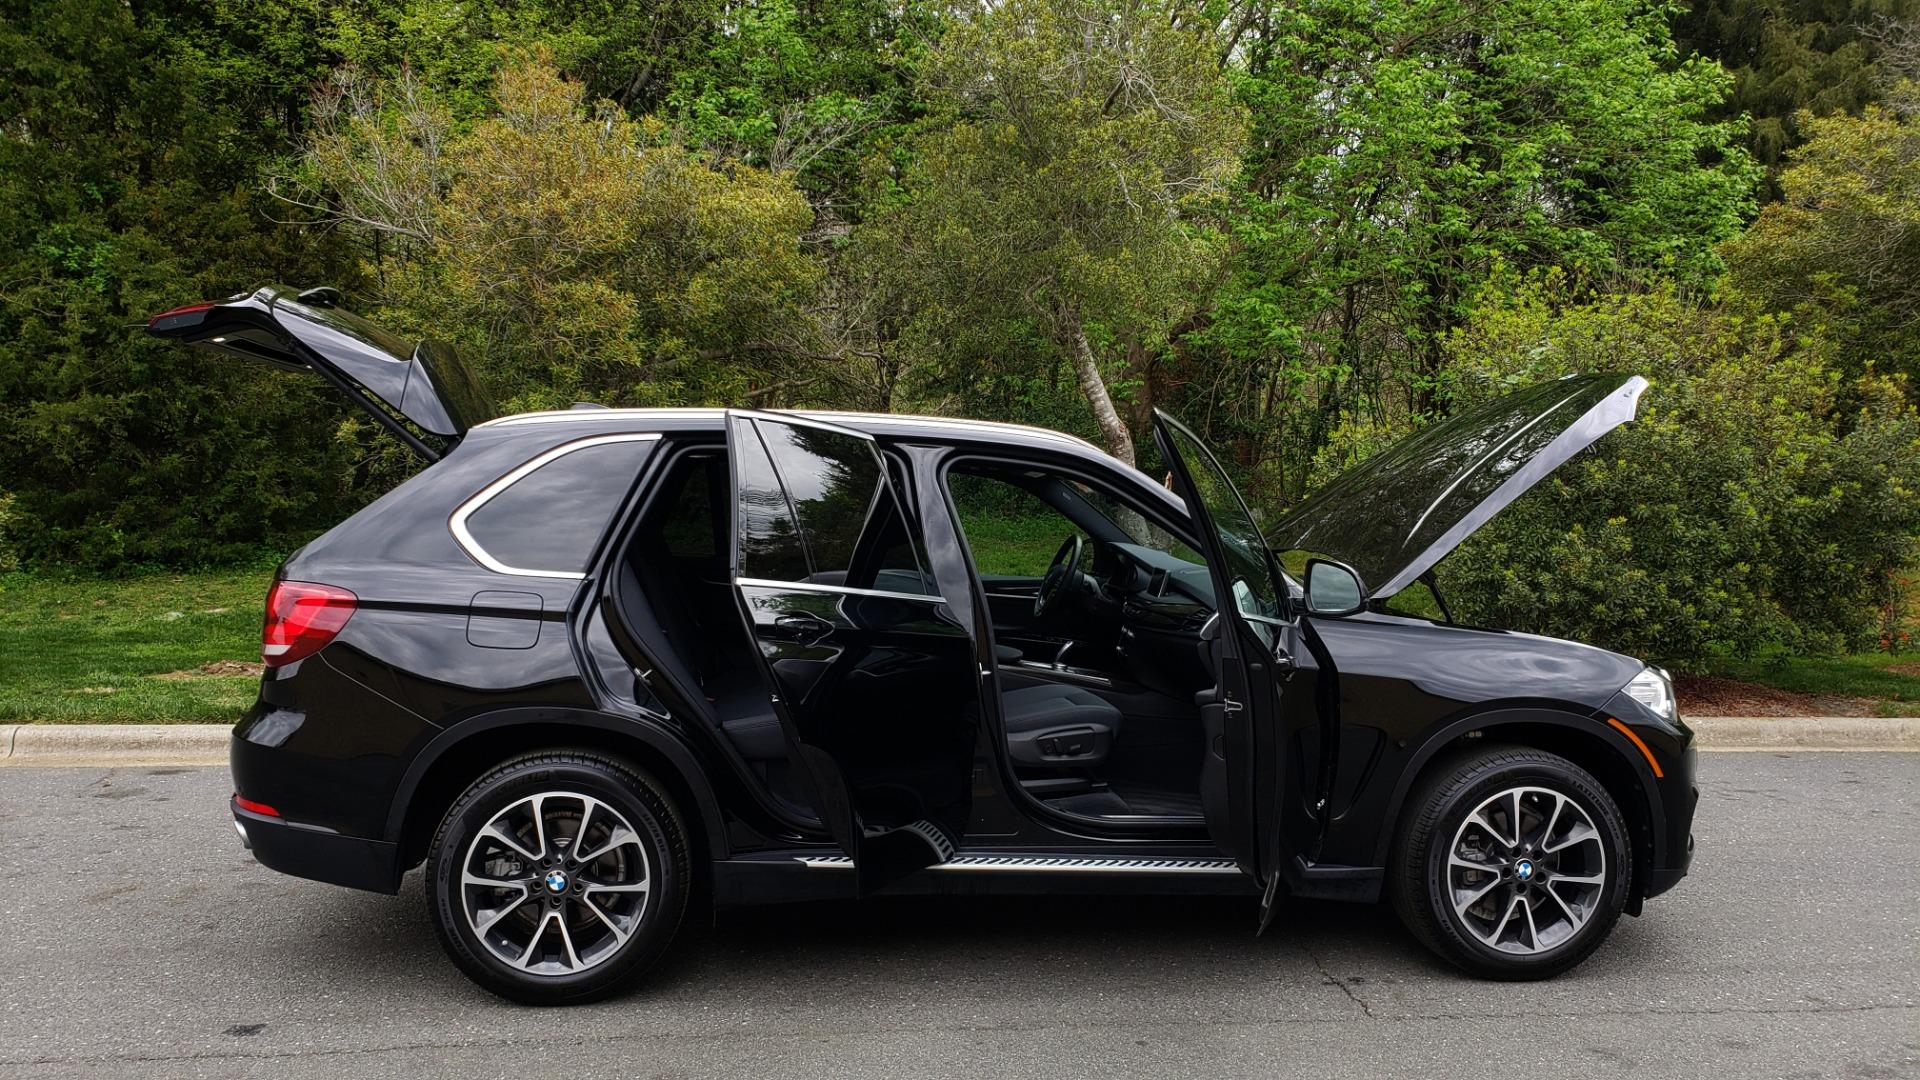 Used 2017 BMW X5 XDRIVE35I / NAV / SUNROOF / REARVIEW / HTD STS for sale Sold at Formula Imports in Charlotte NC 28227 14